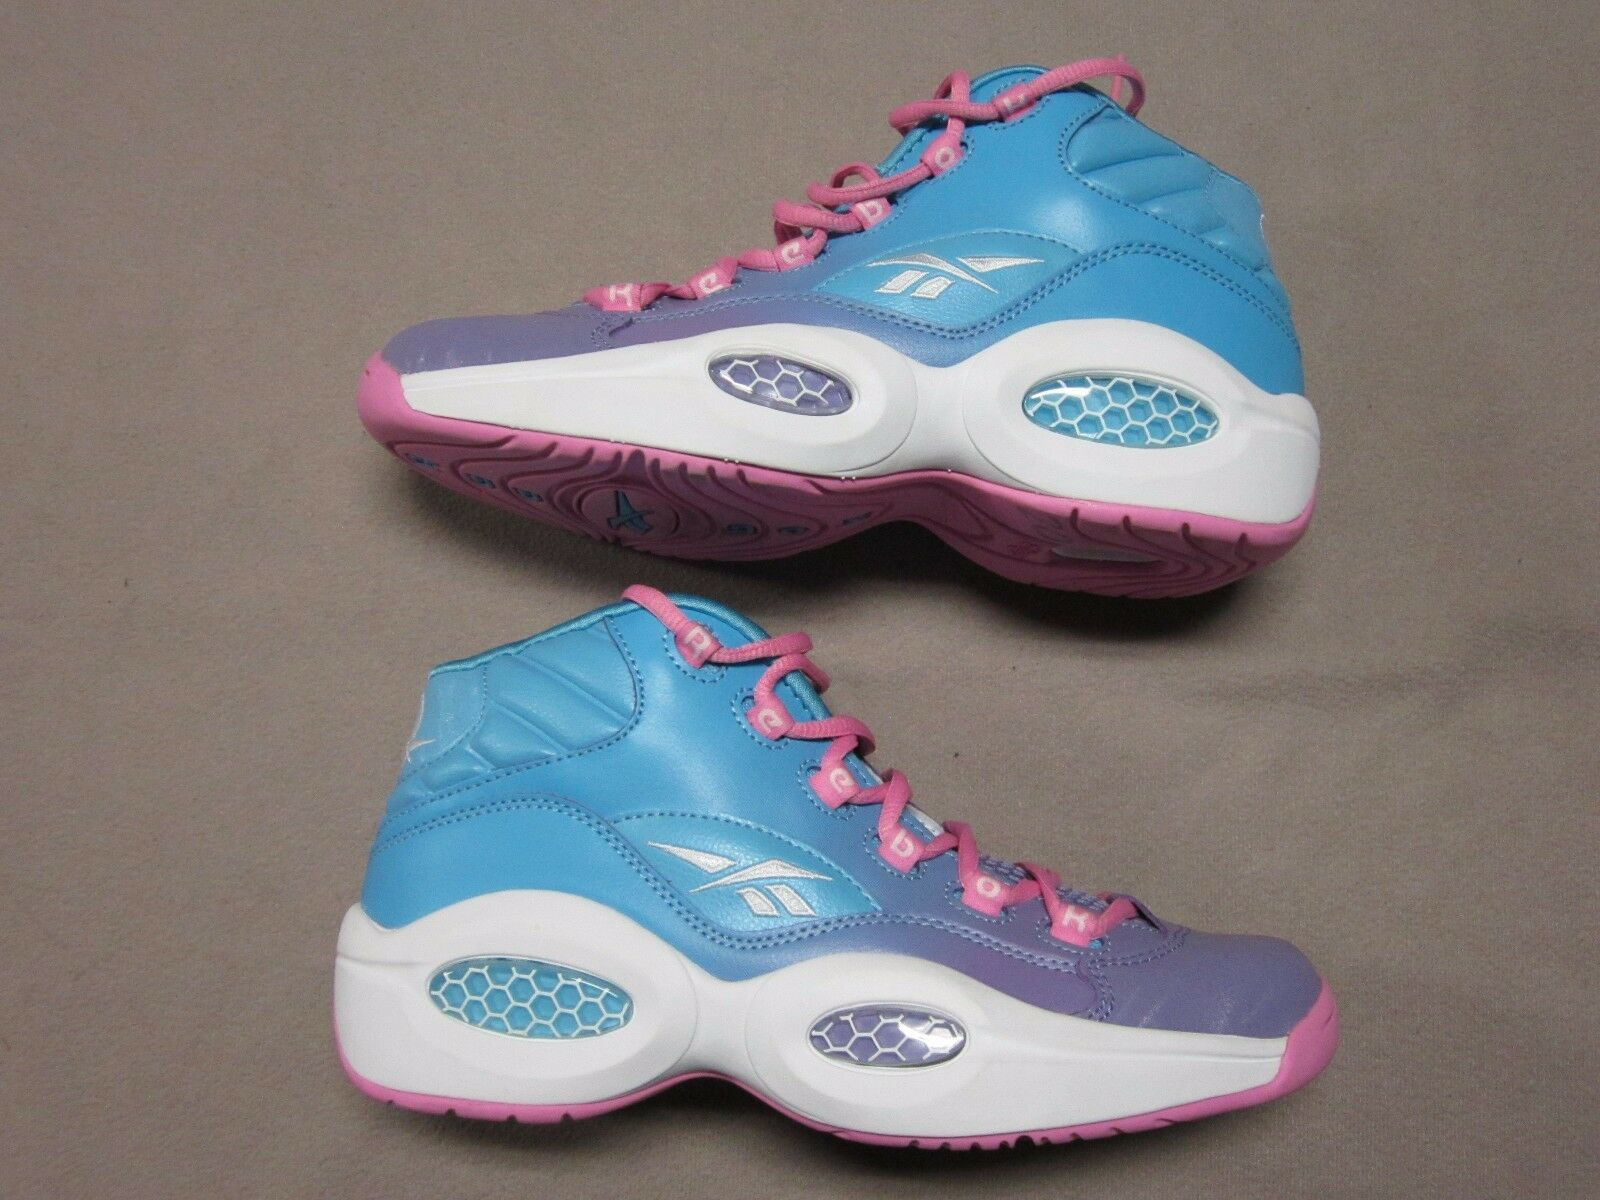 REEBOK WOMENS PINK & blueE THE QUESTION MID BASKETBALL SNEAKERS SHOES SIZE 7 NEW